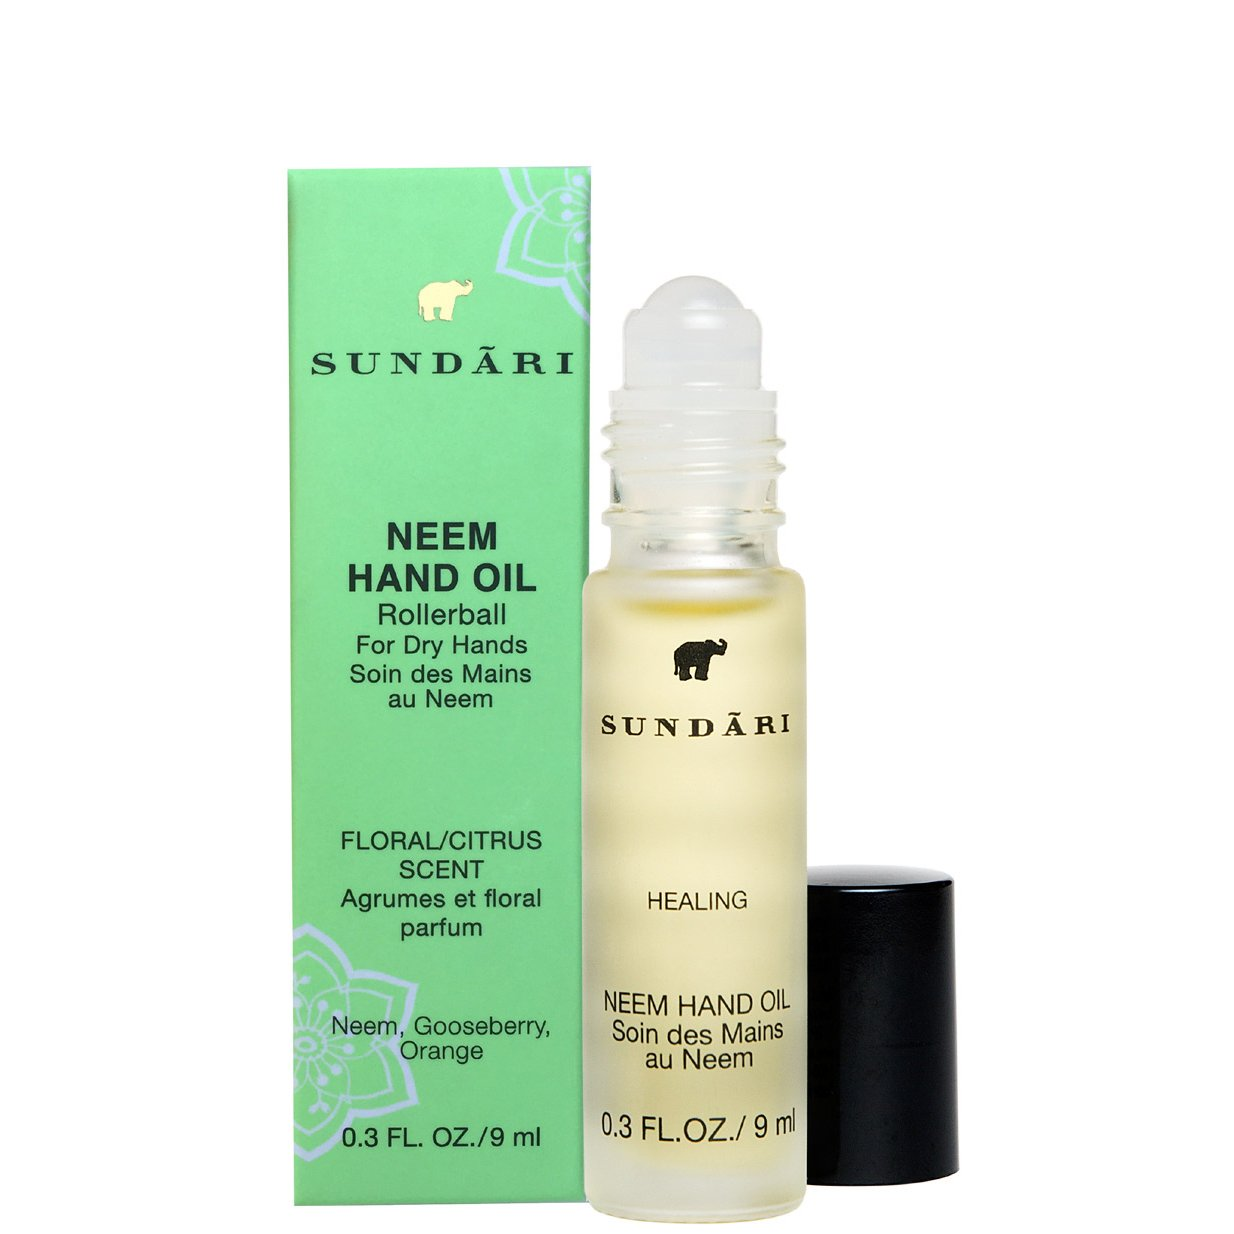 SUNDARI Neem Hand Oil ~ For Soft/Silky Hands ~ To-Go Rollerball ~ Absorbs quickly ~ Feel the difference in the first use!